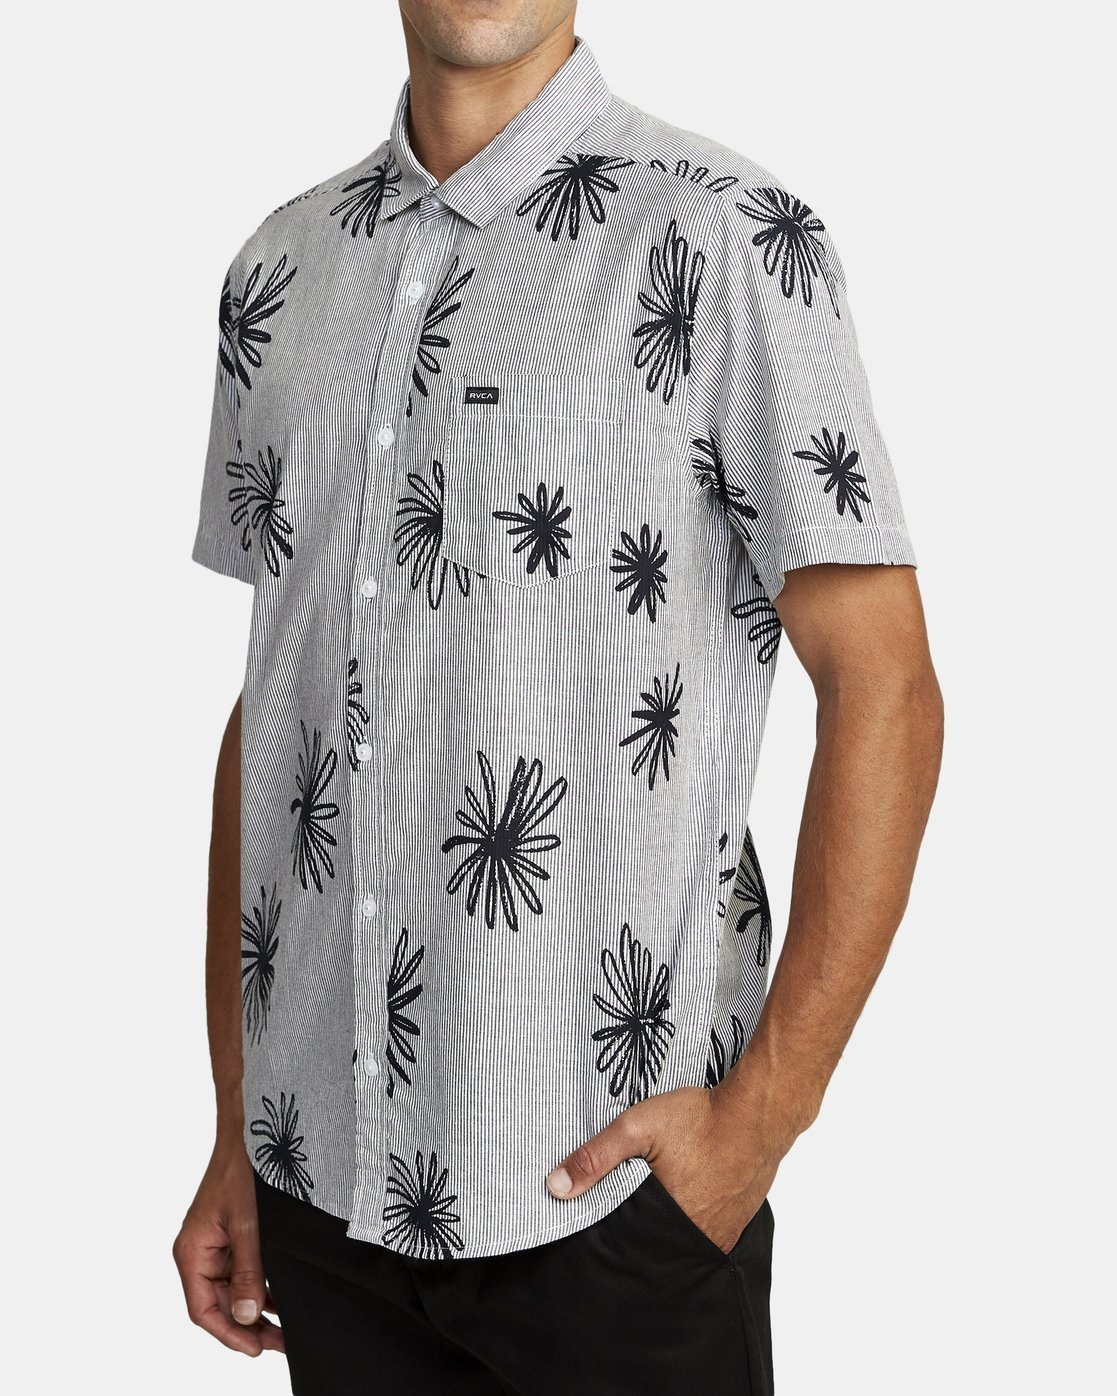 6 WHIRLS SHORT SLEEVE SHIRT Black M5052RWH RVCA